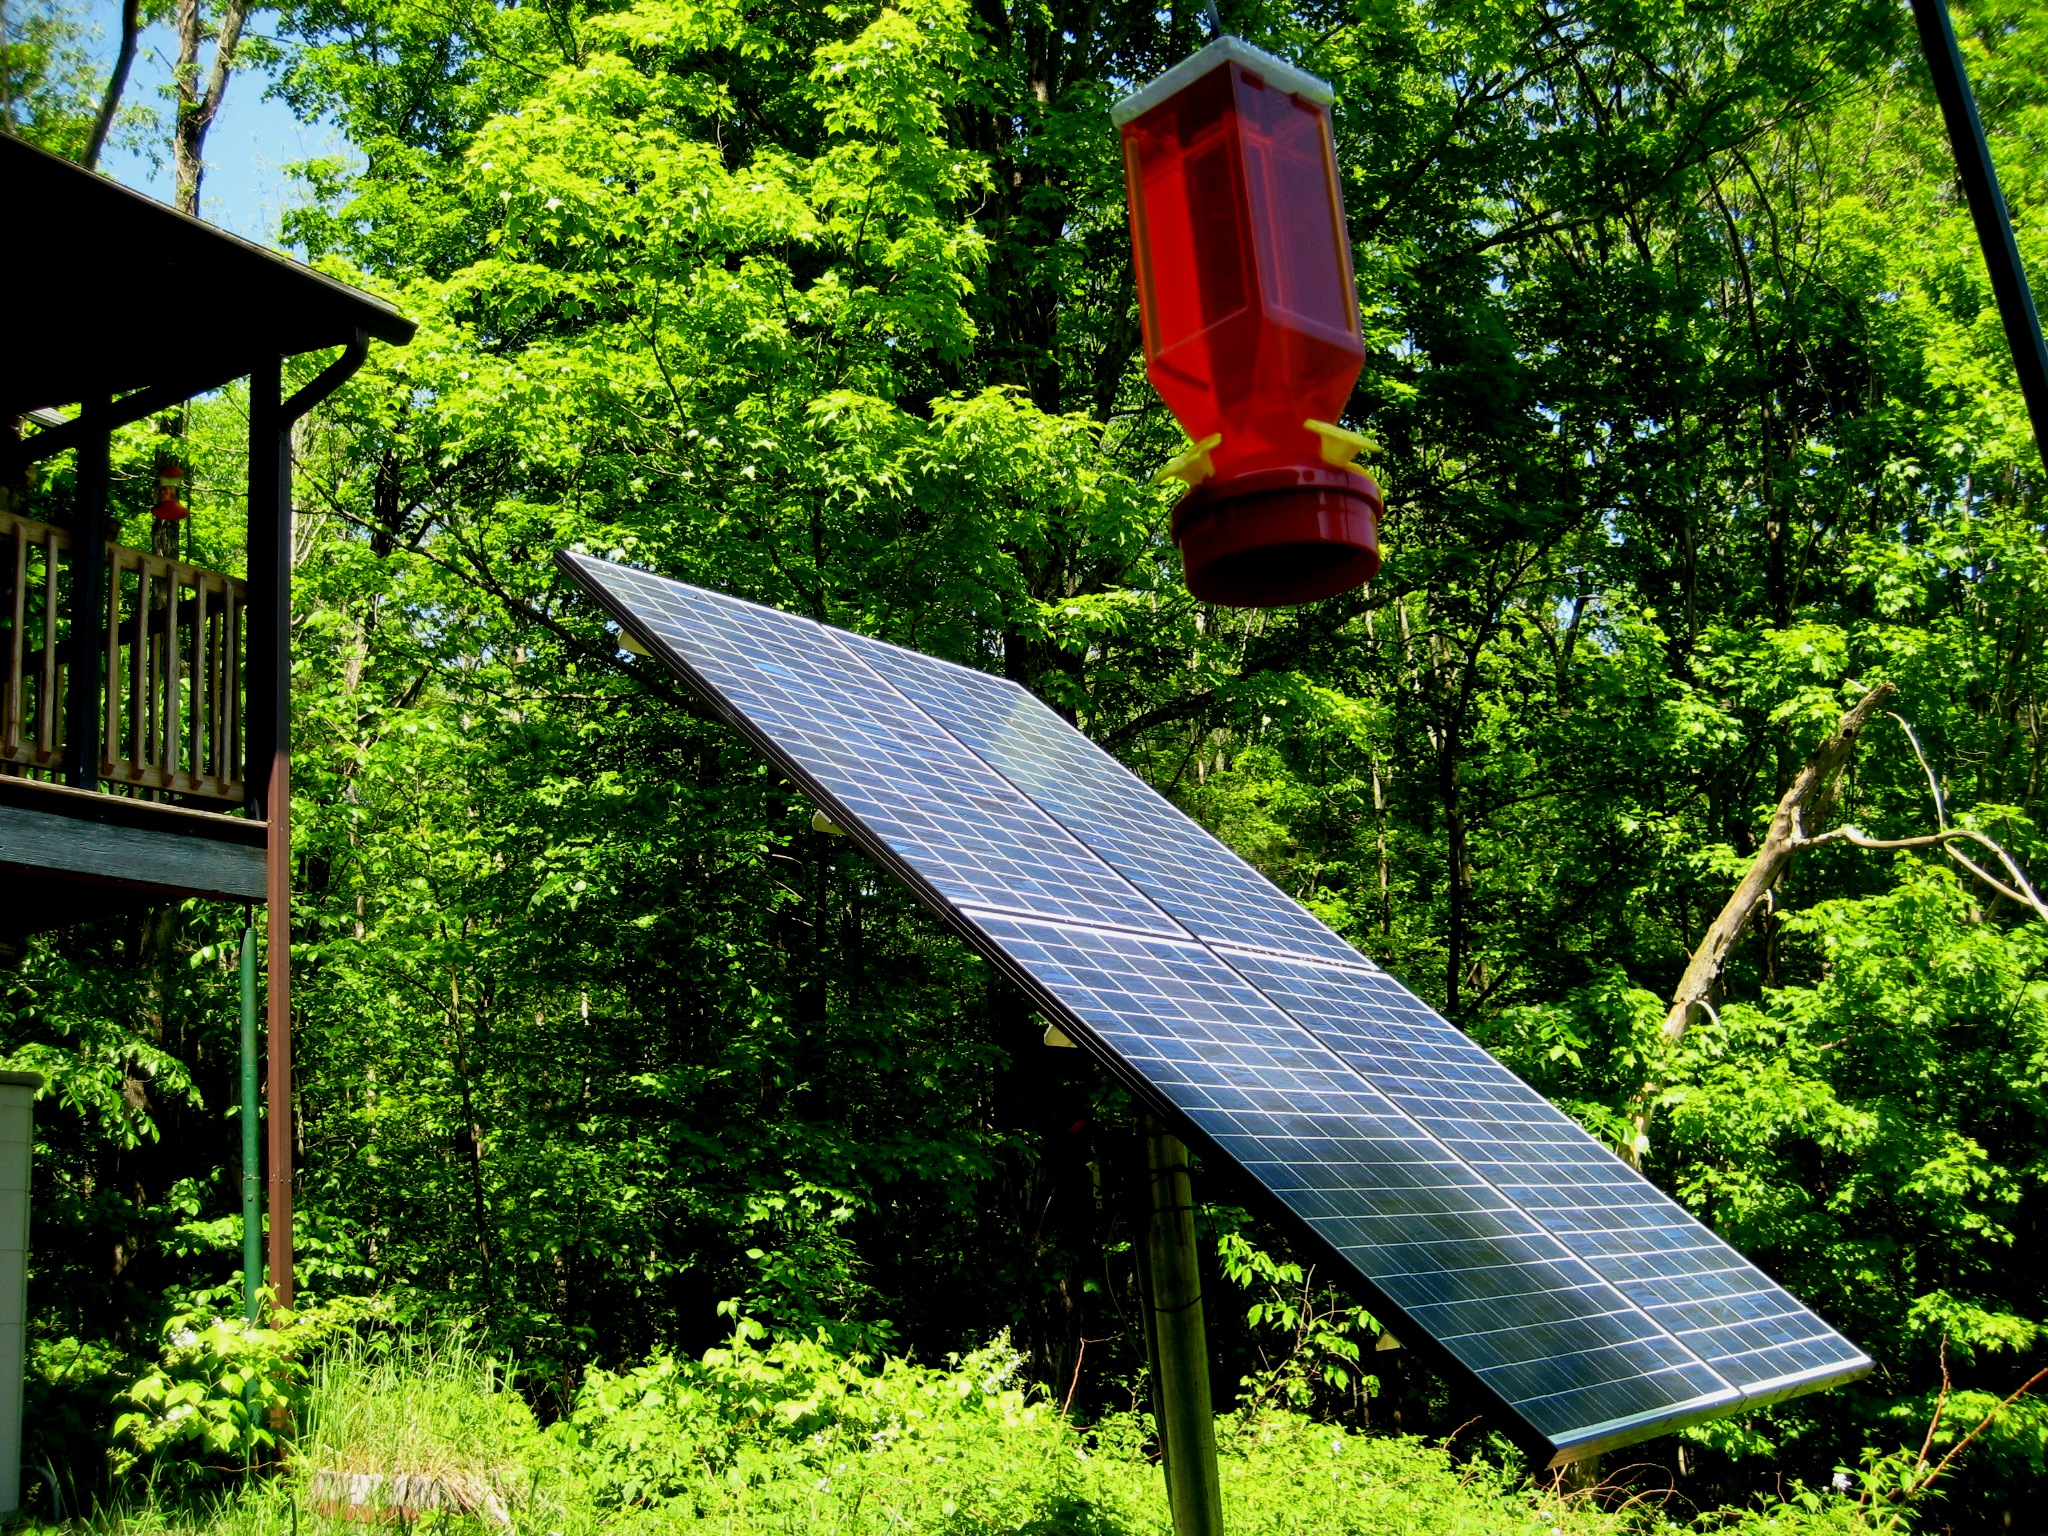 Off-grid solar electric system with batteries in Greenwich New York